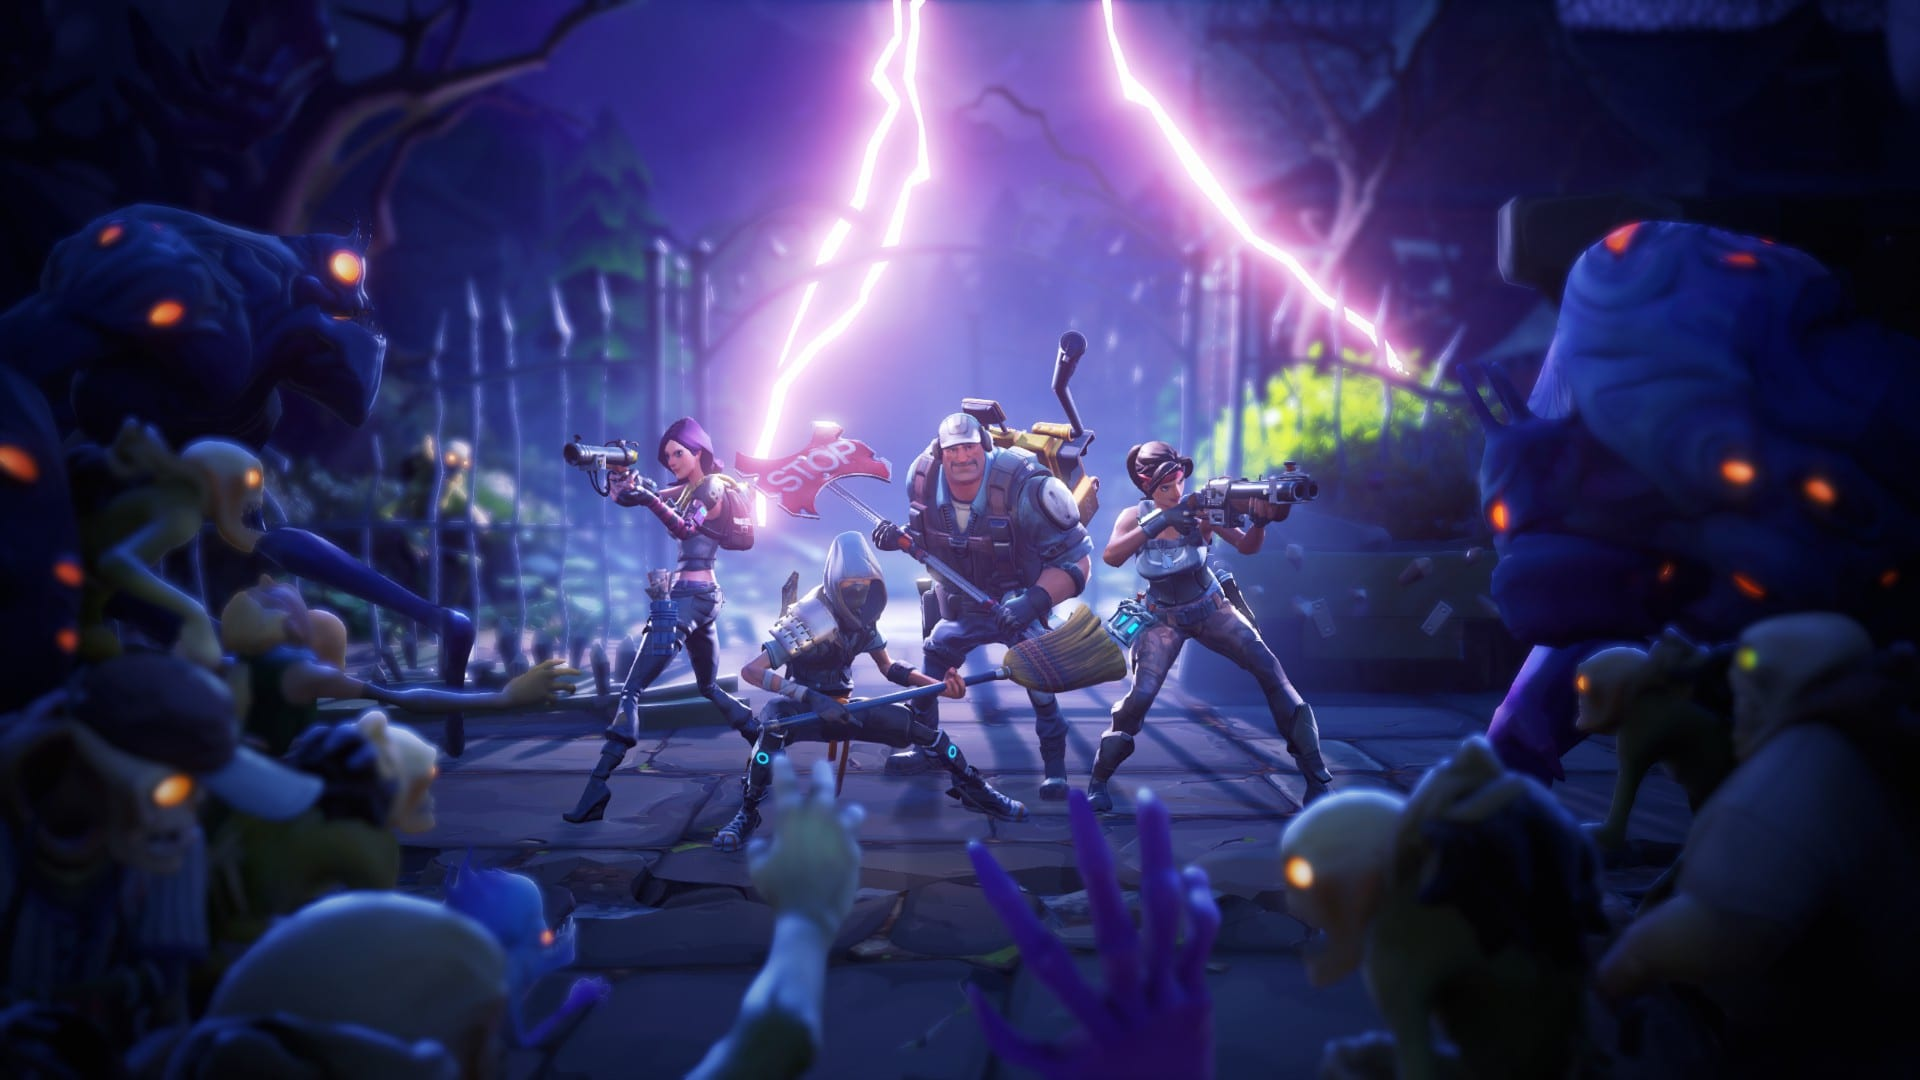 Desktop Wallpaper 2018 Video Game Fortnite Art Hd: Fortnite Save The World Zombie Walllpaper › Fortnite Tools